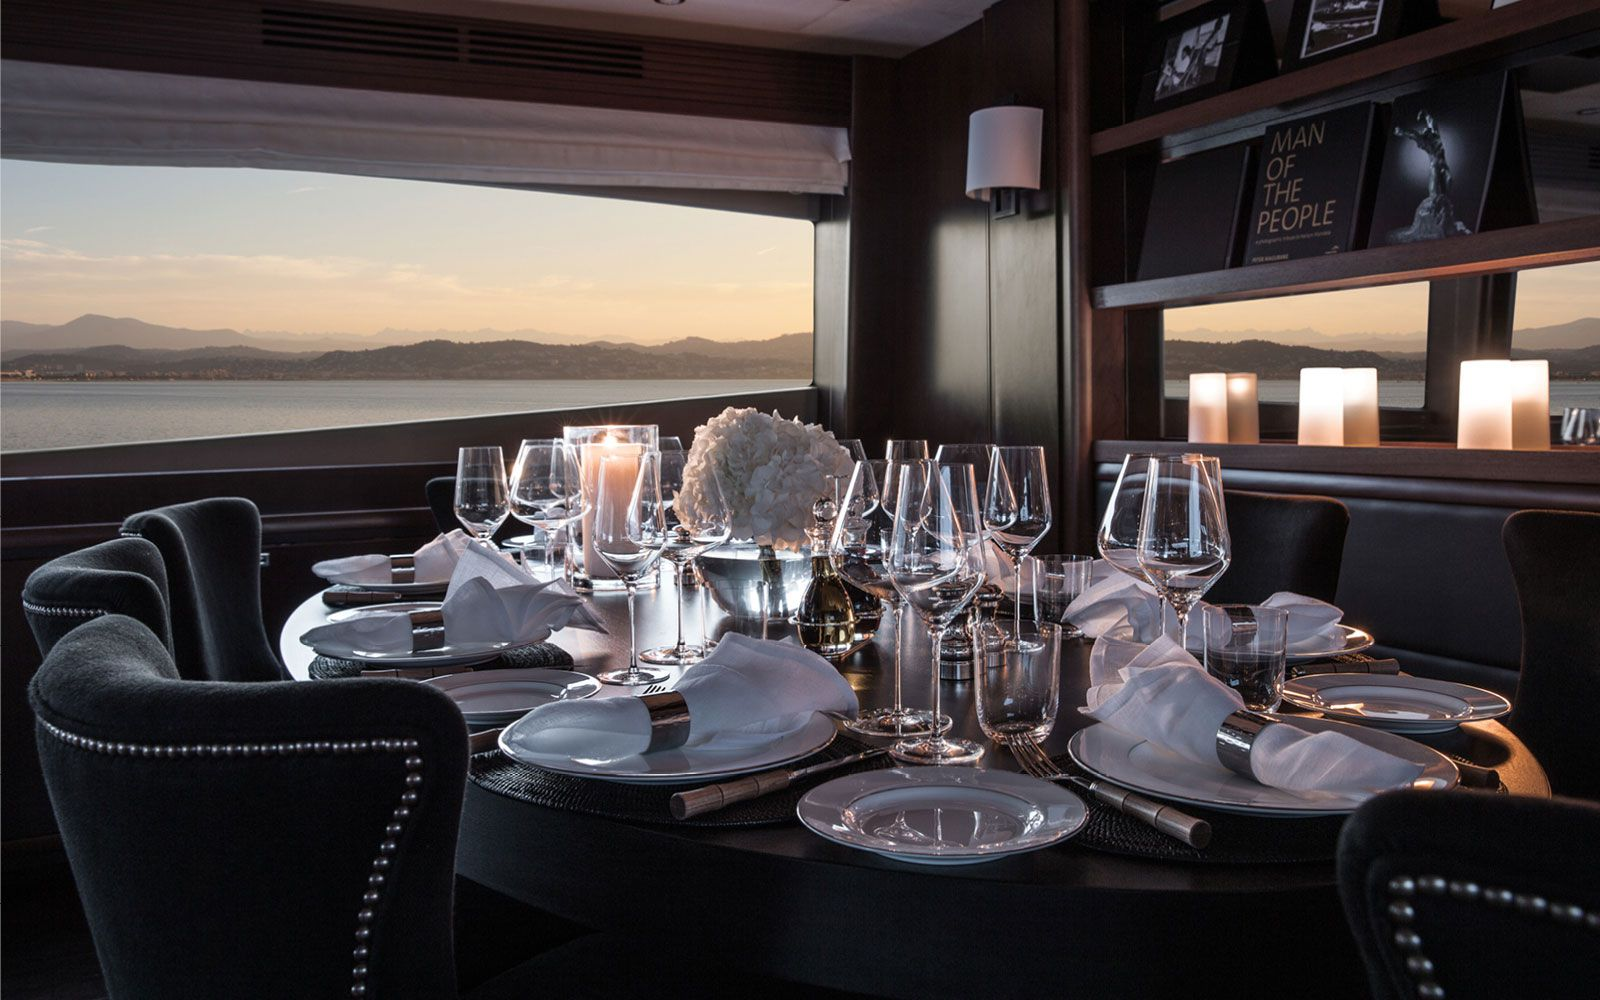 Elegant dining set up for delicious dinners on board